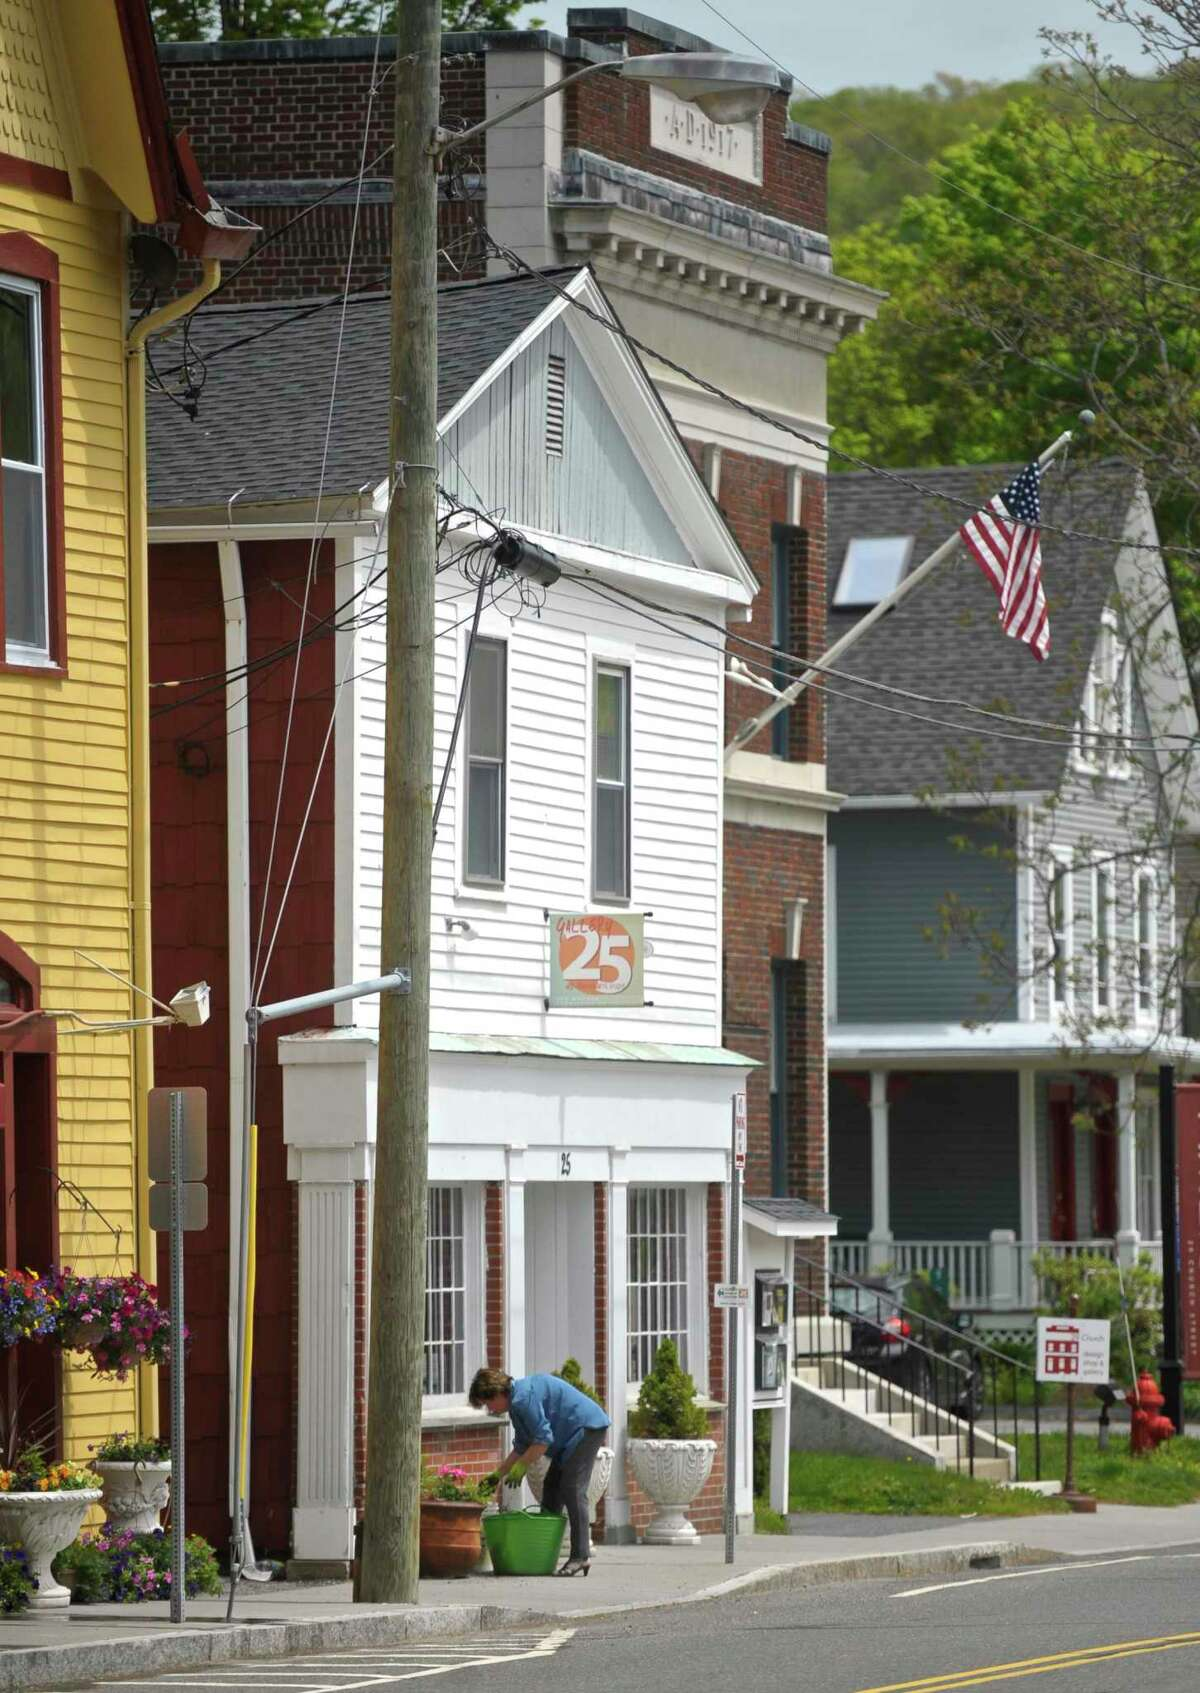 25 Church Street, in New Milford, Thursday, May 19, 2016, in New Milford, Conn.